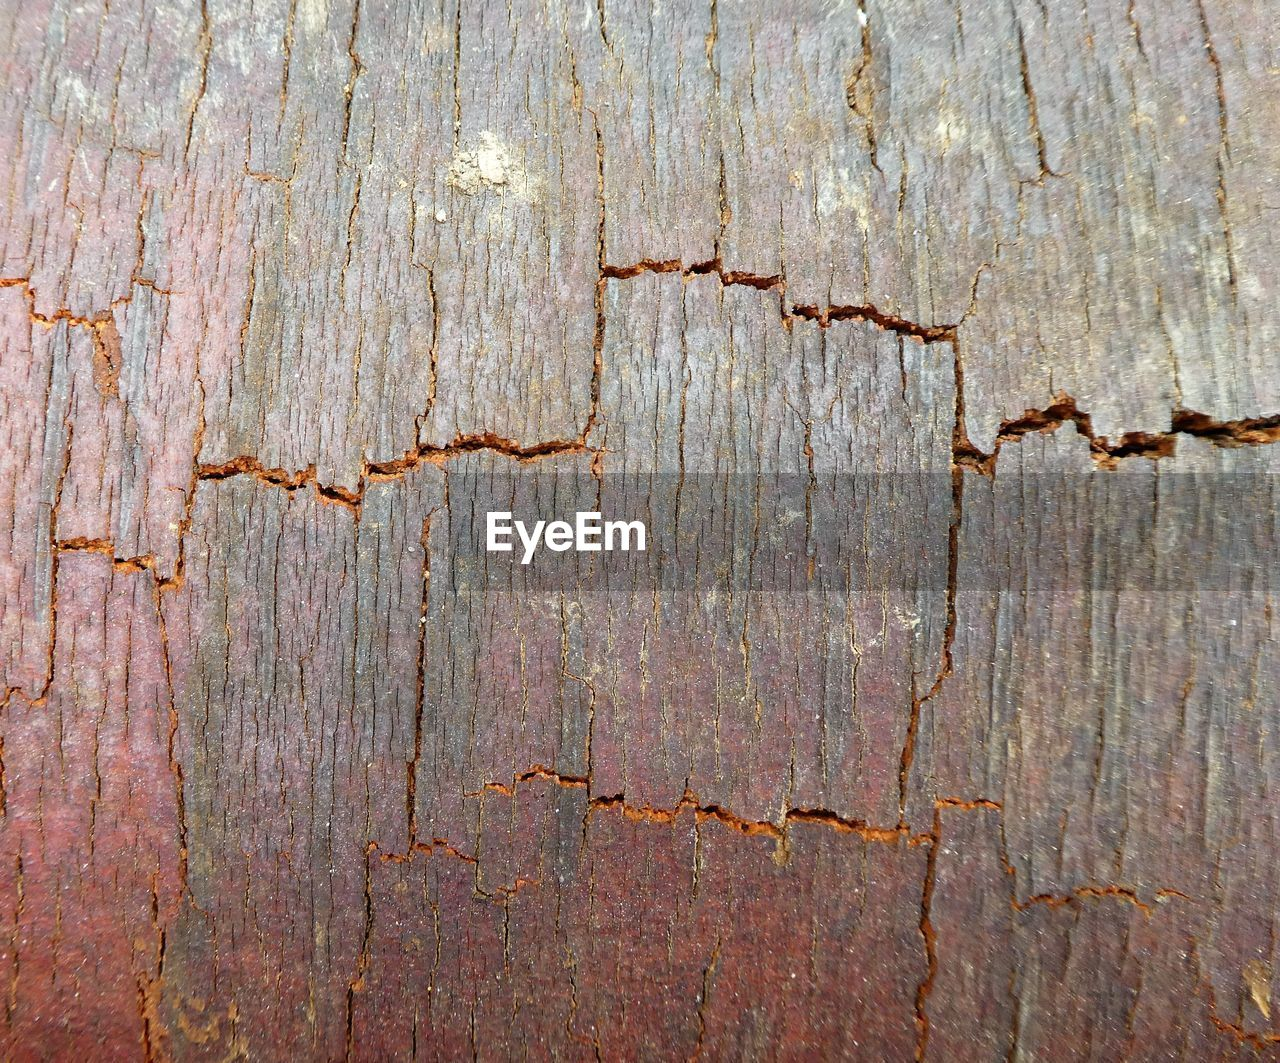 textured, wood - material, backgrounds, pattern, full frame, weathered, old, no people, rough, damaged, close-up, wood, wood grain, plank, cracked, brown, day, wall - building feature, outdoors, broken, abstract, textured effect, abstract backgrounds